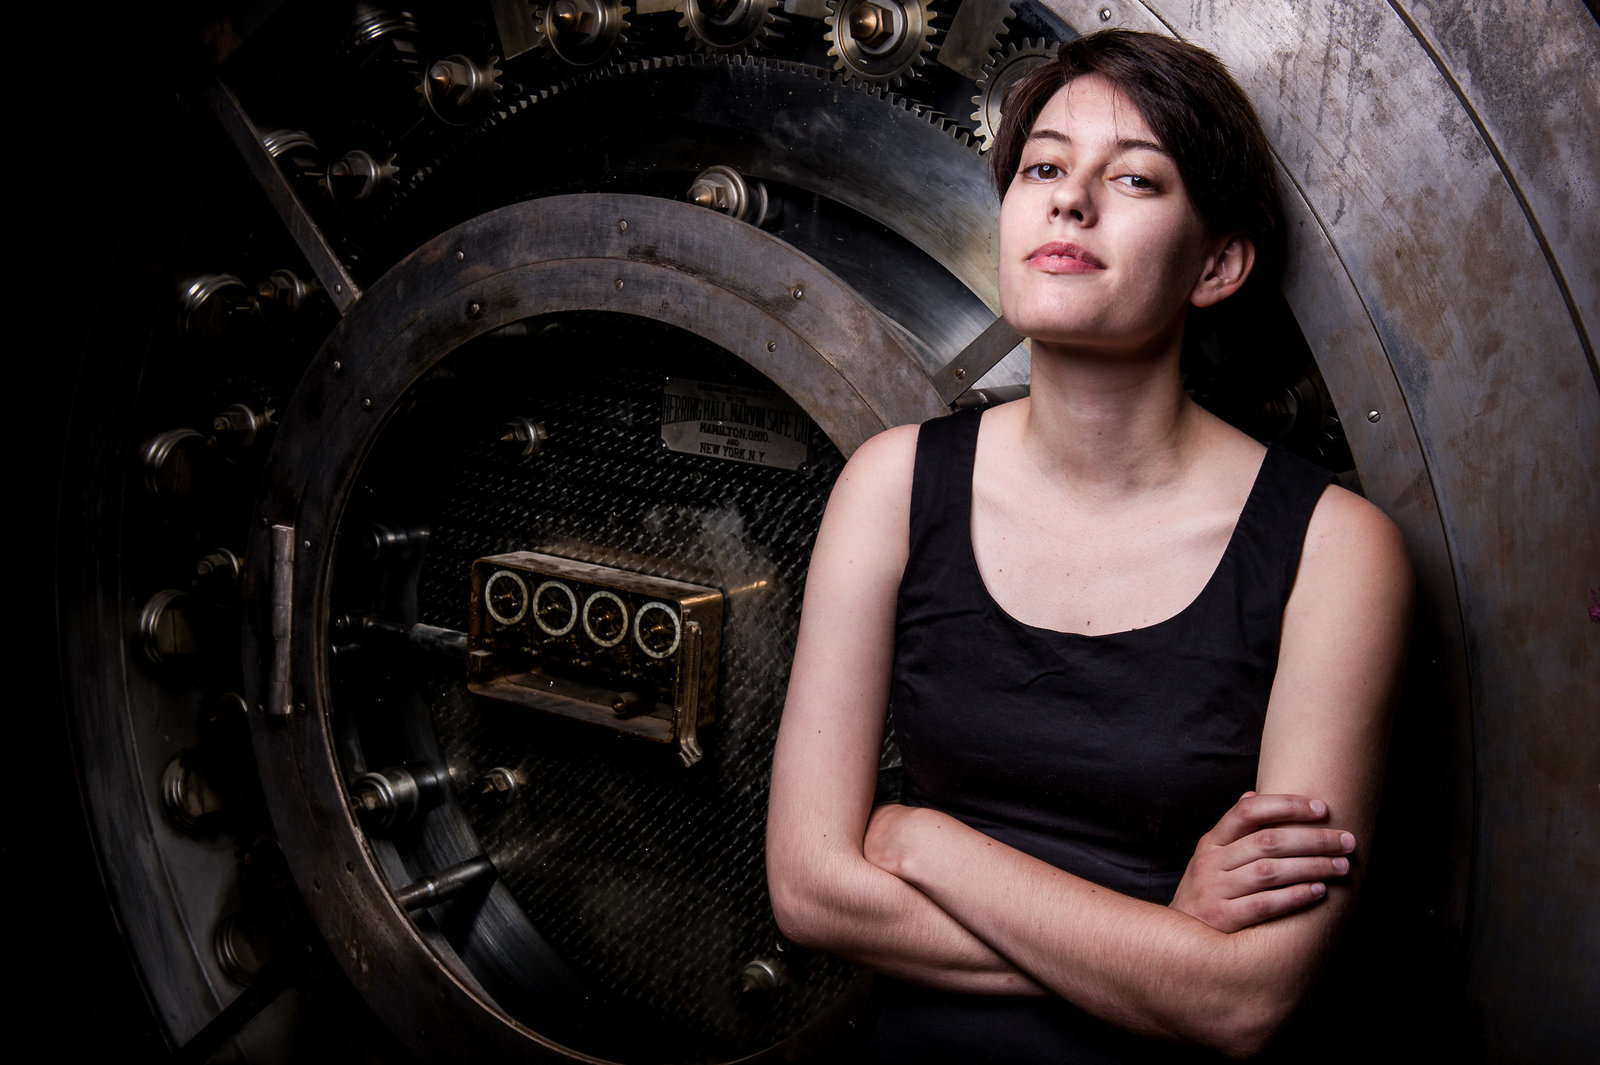 Portrait of Renee with bank vault door background.